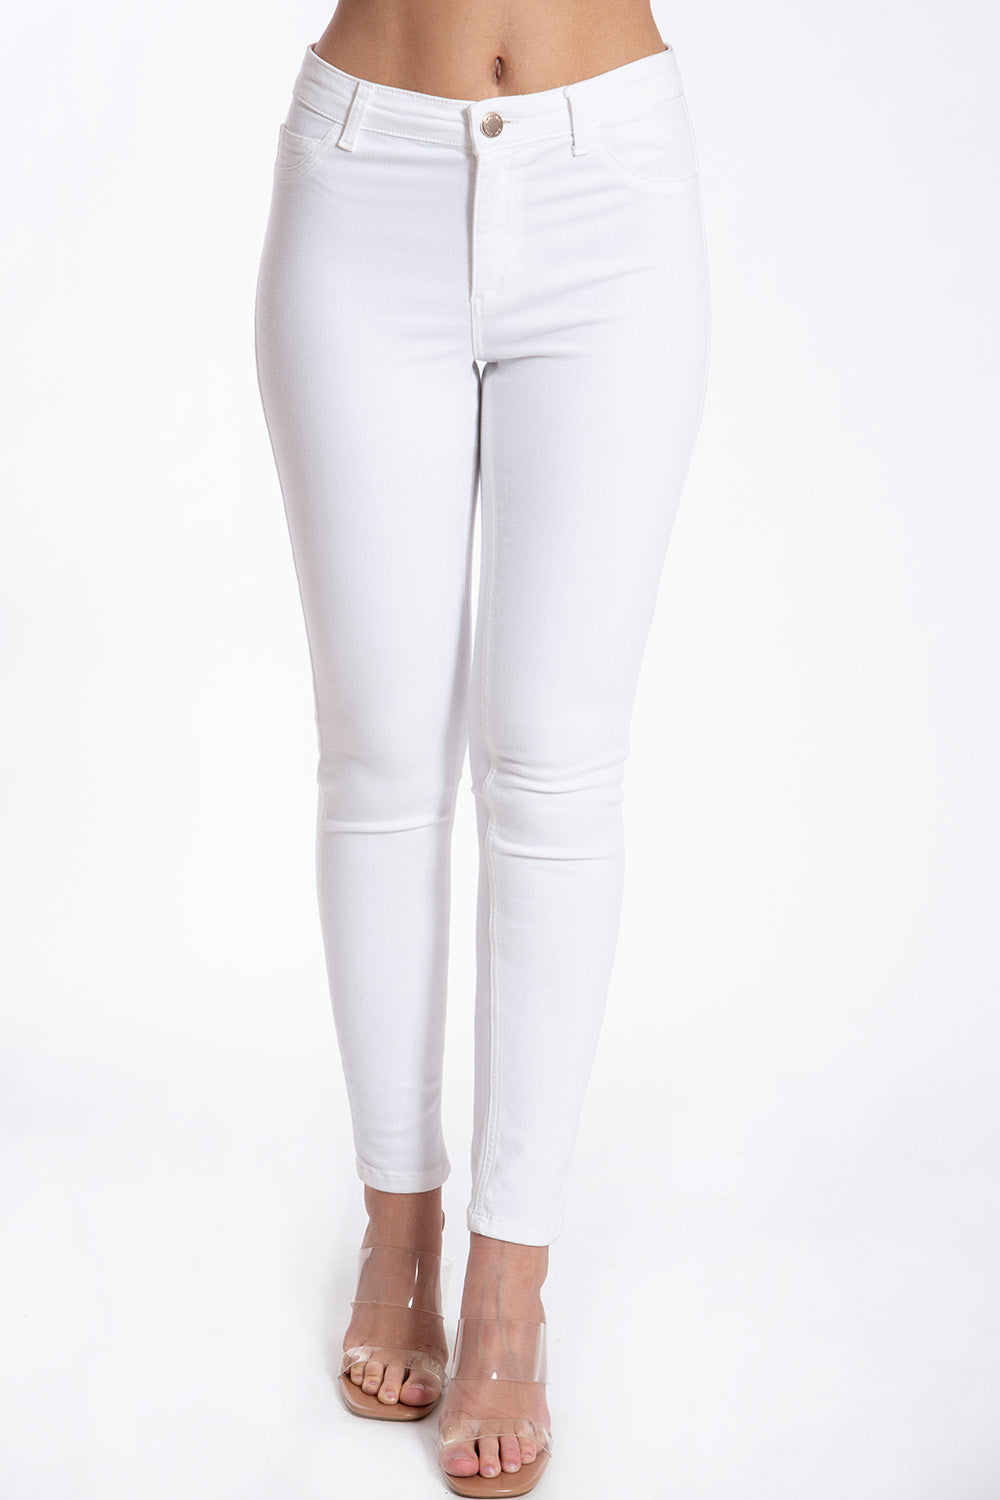 Relish high rise skinny trousers